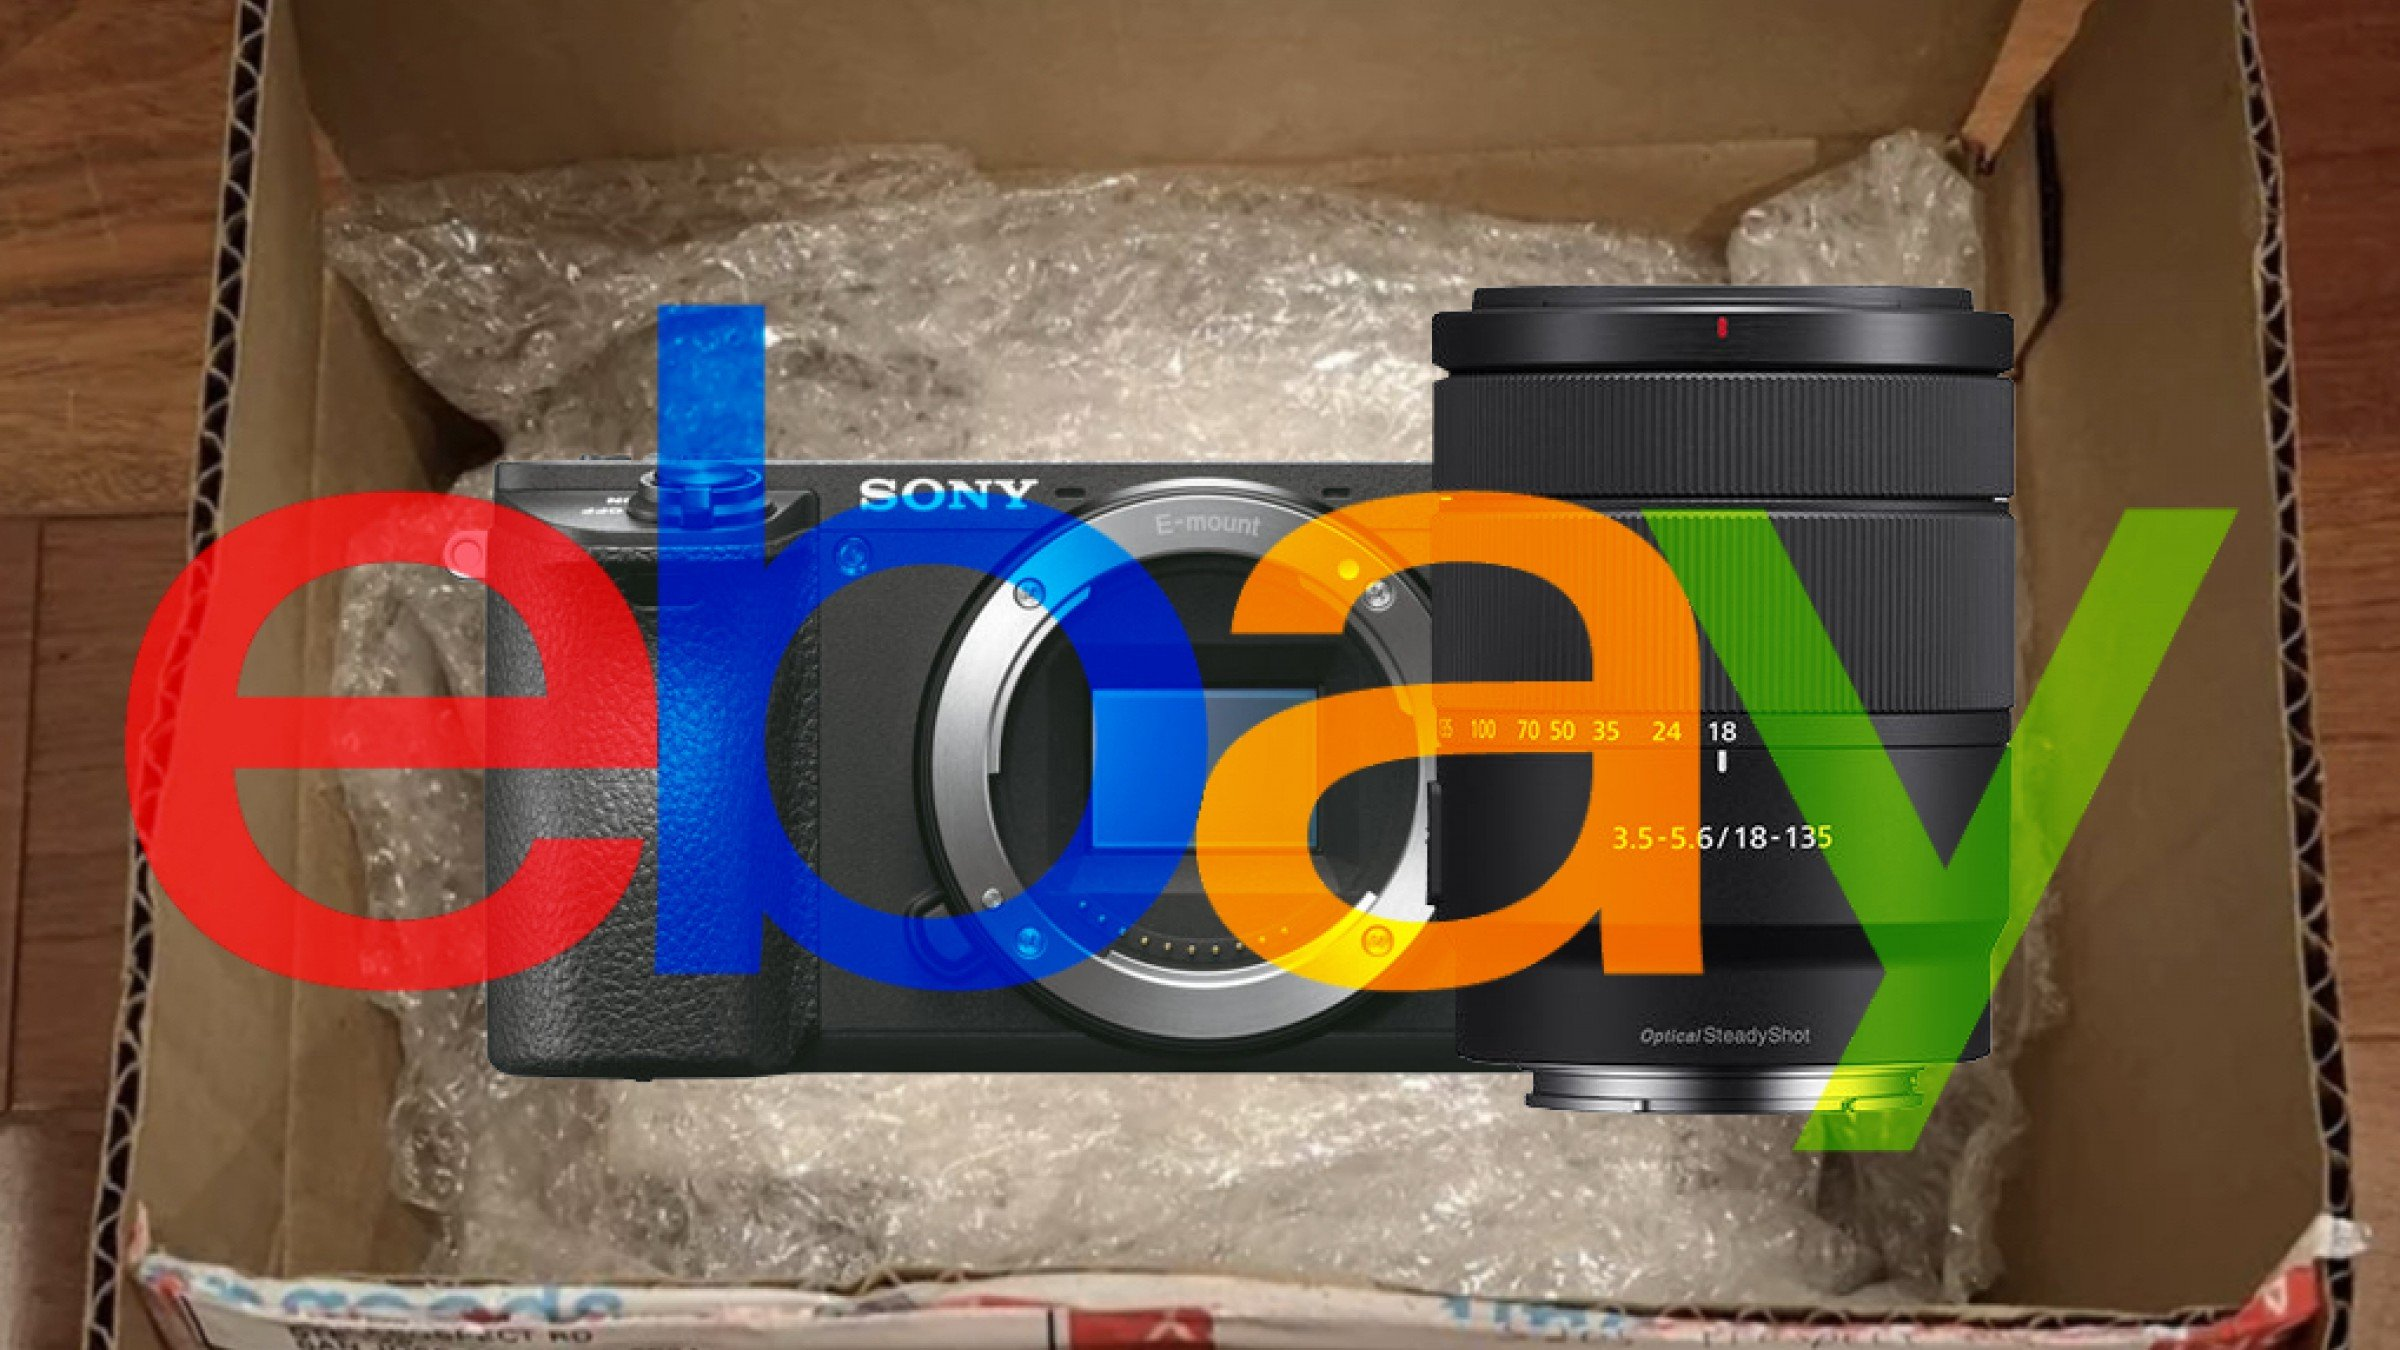 New Ebay Scam Could Bite Shooters Looking To Sell Old Camera Gear